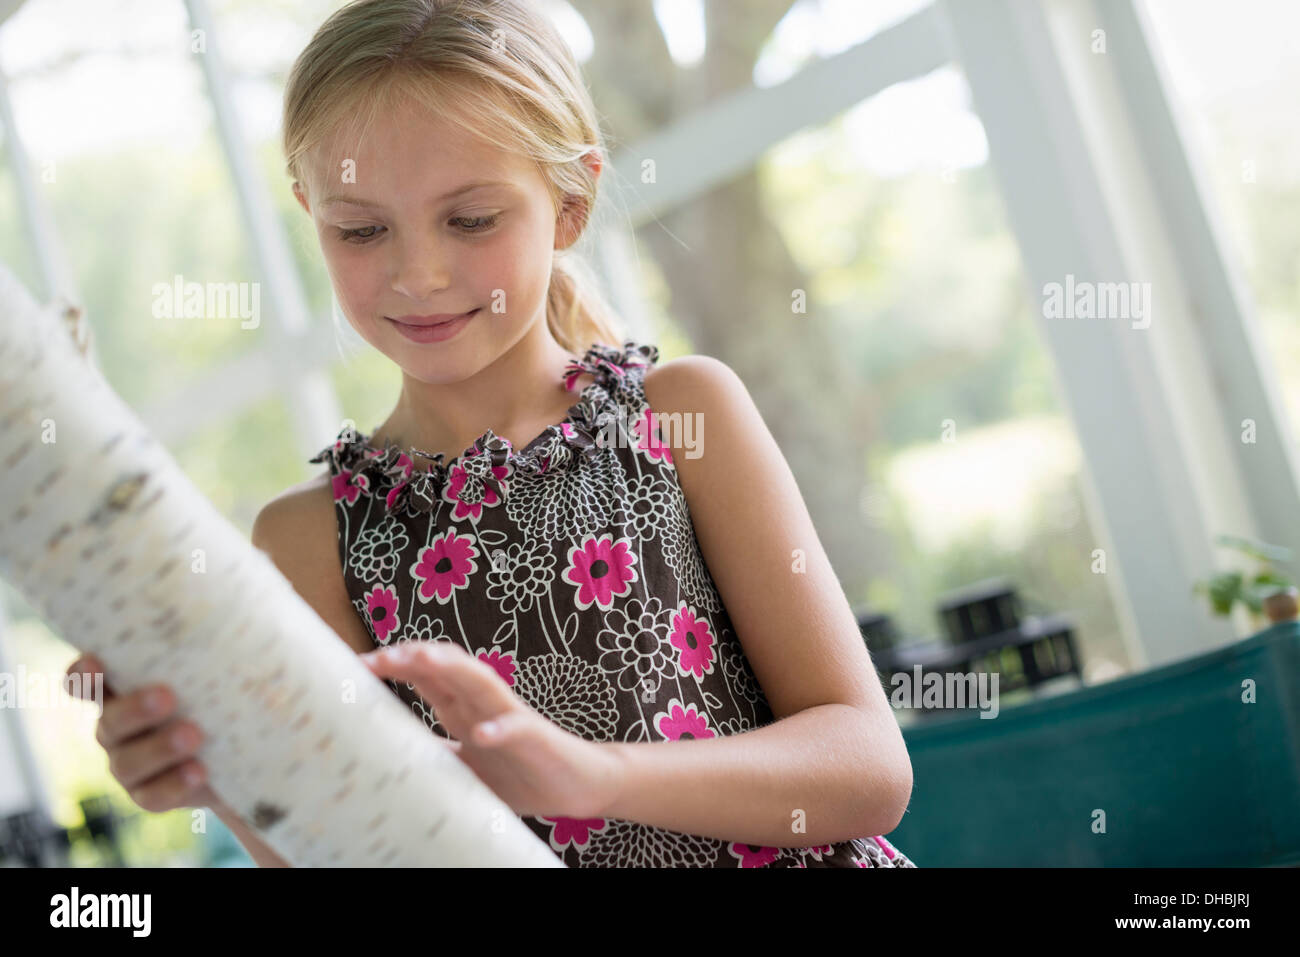 A young girl holding a piece of tree trunk with very white bark. - Stock Image